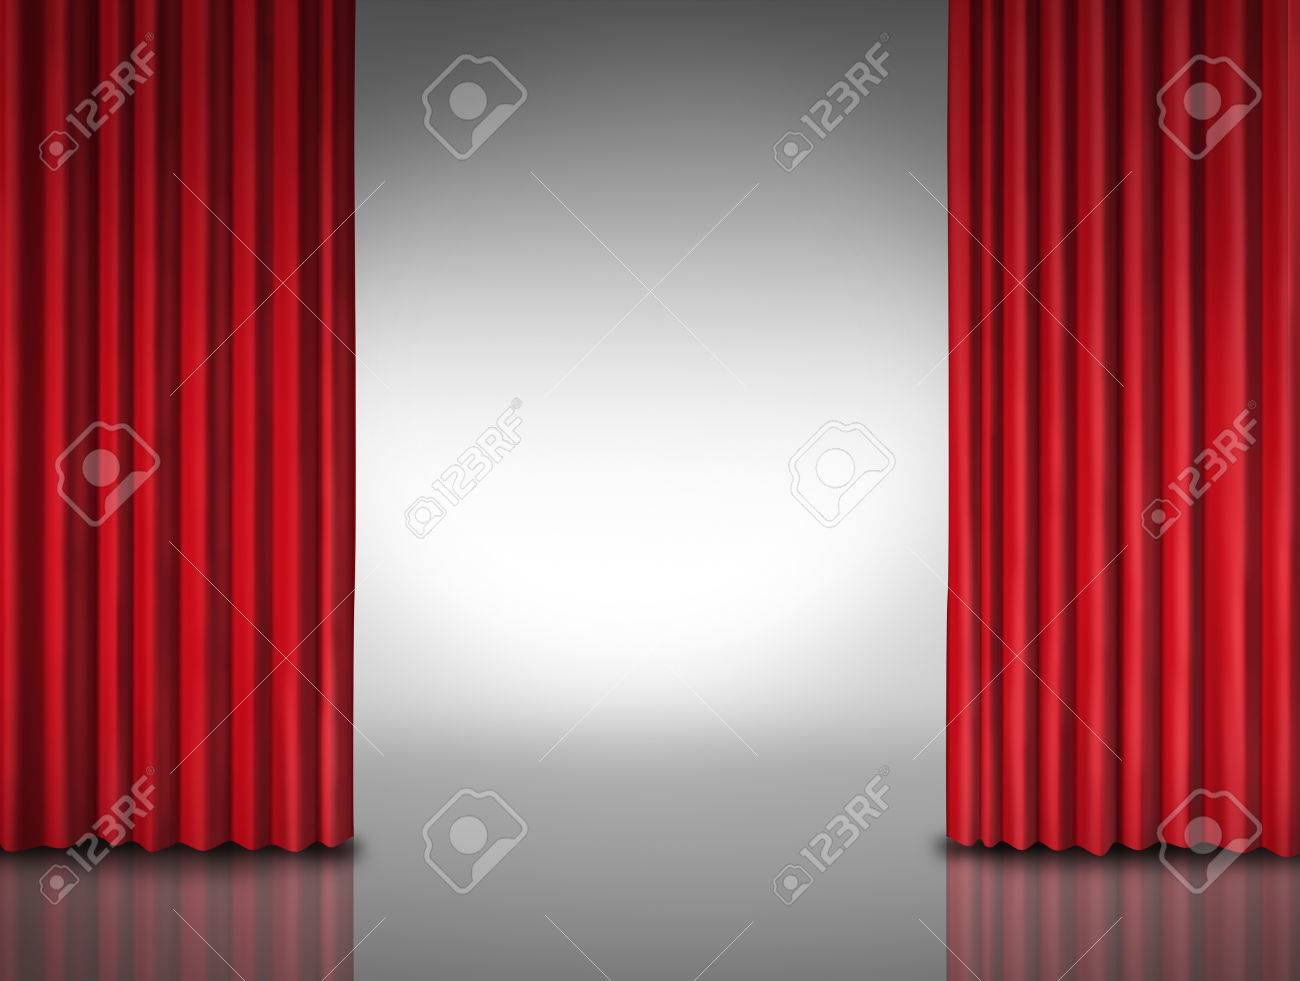 Entertainment background for movie performances at a glossy theater stage Stock Photo - 23181112